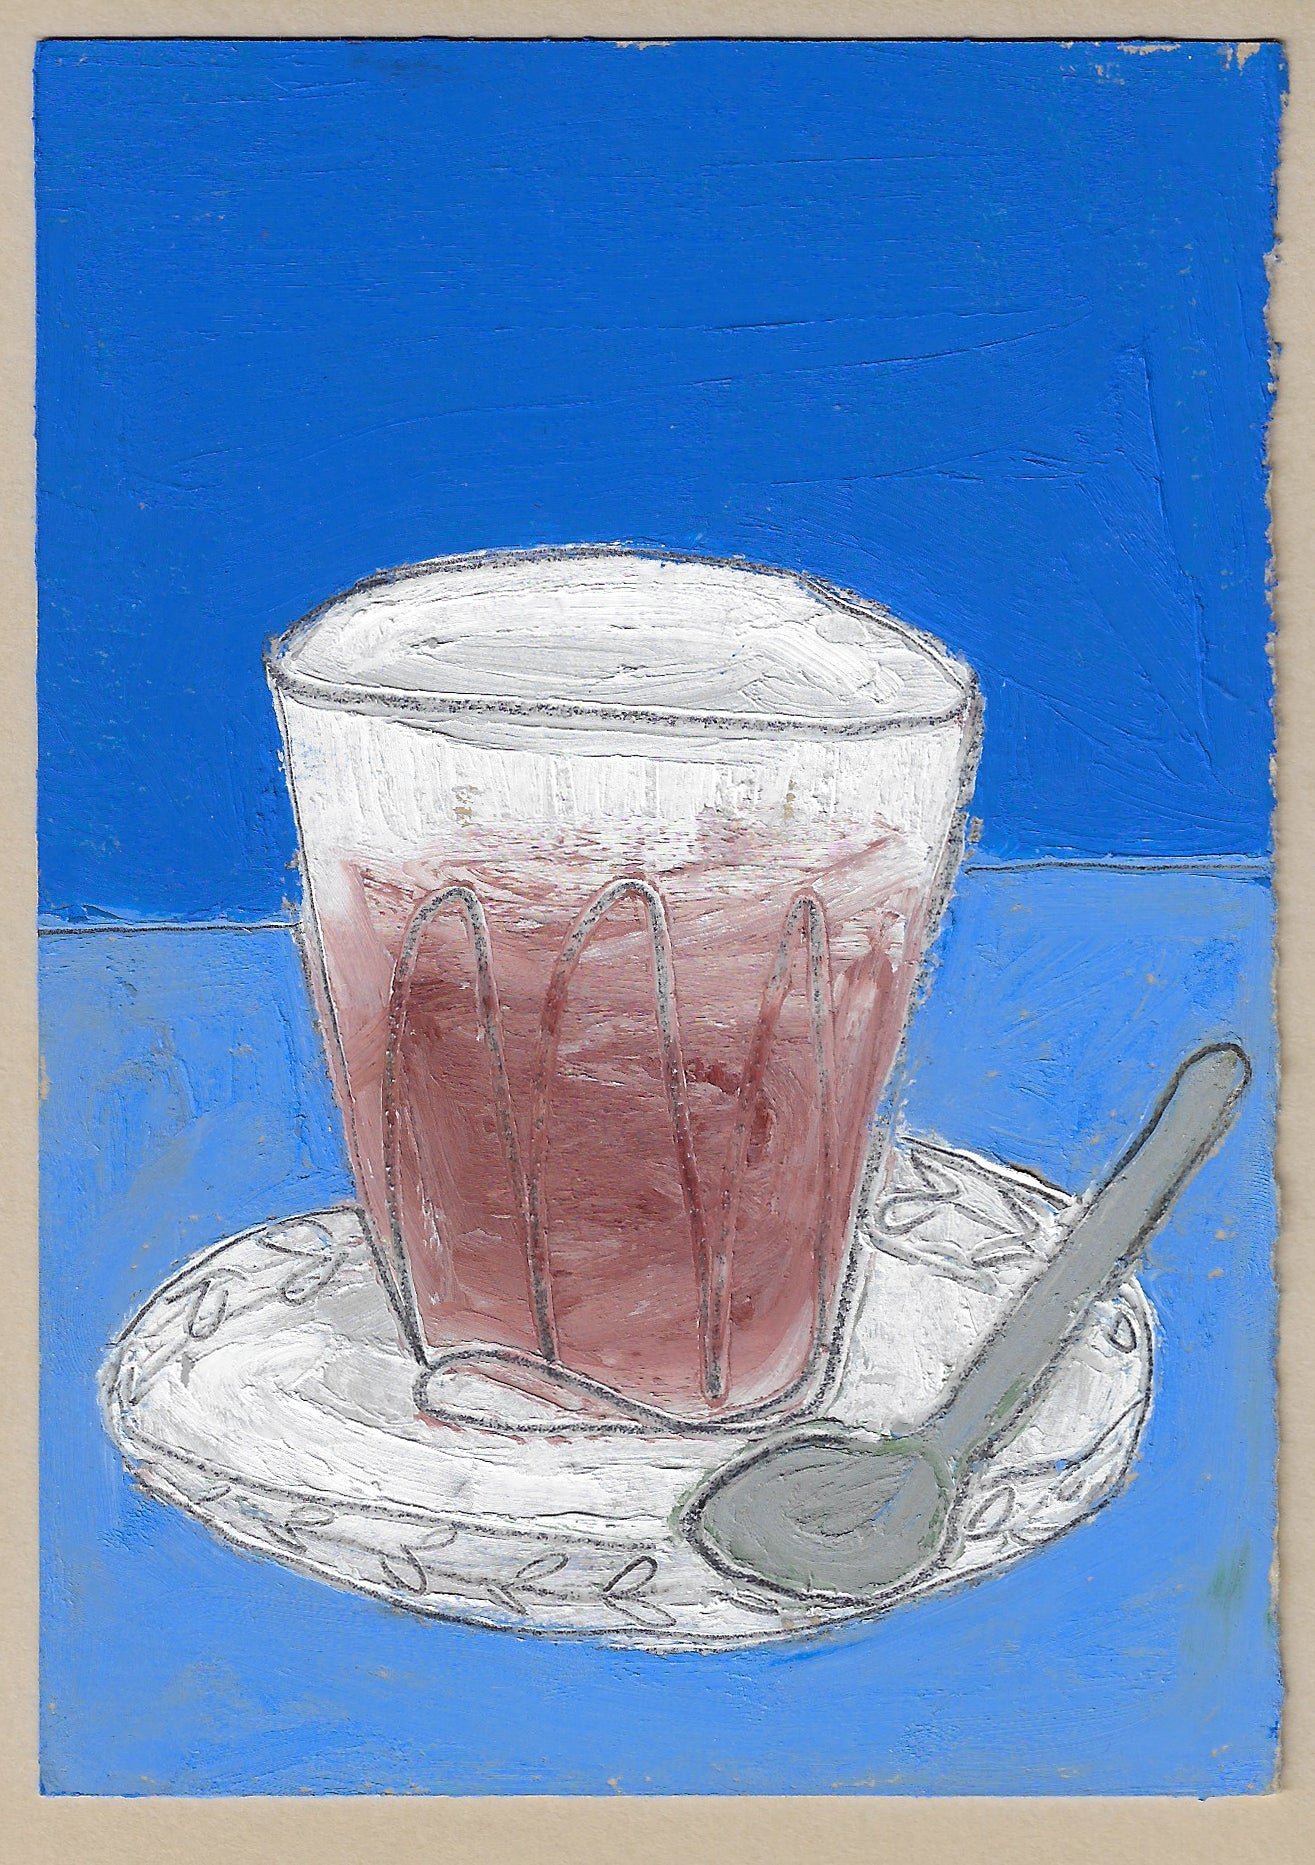 Painting of a cortado on blue background by Lottie Hampson for Canyon Coffee